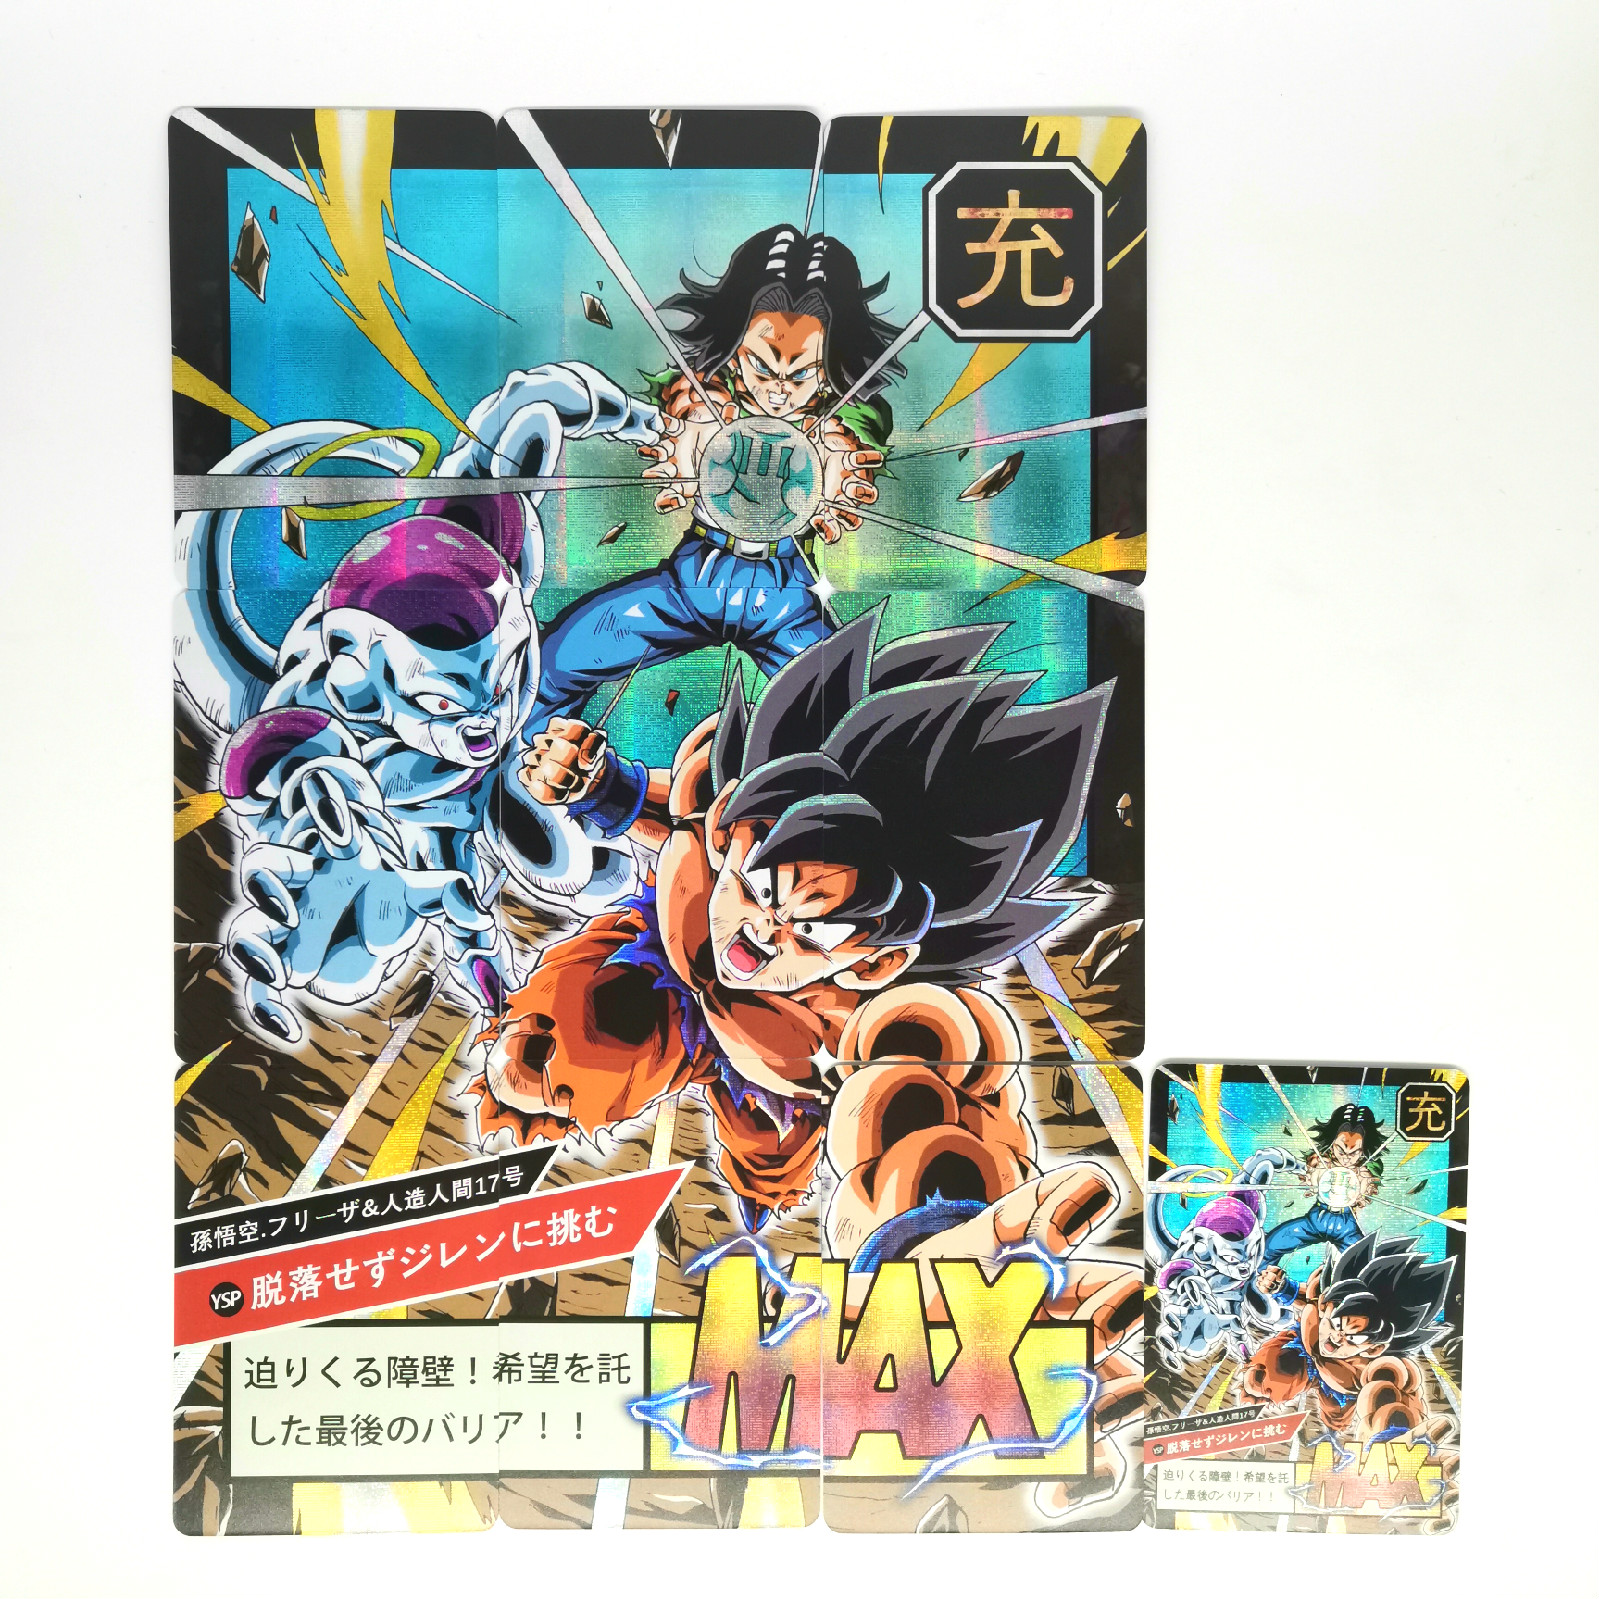 10pcs Super Dragon Ball Z Heroes Battle Card Ultra Instinct Goku Vegeta Game Collection Cards image